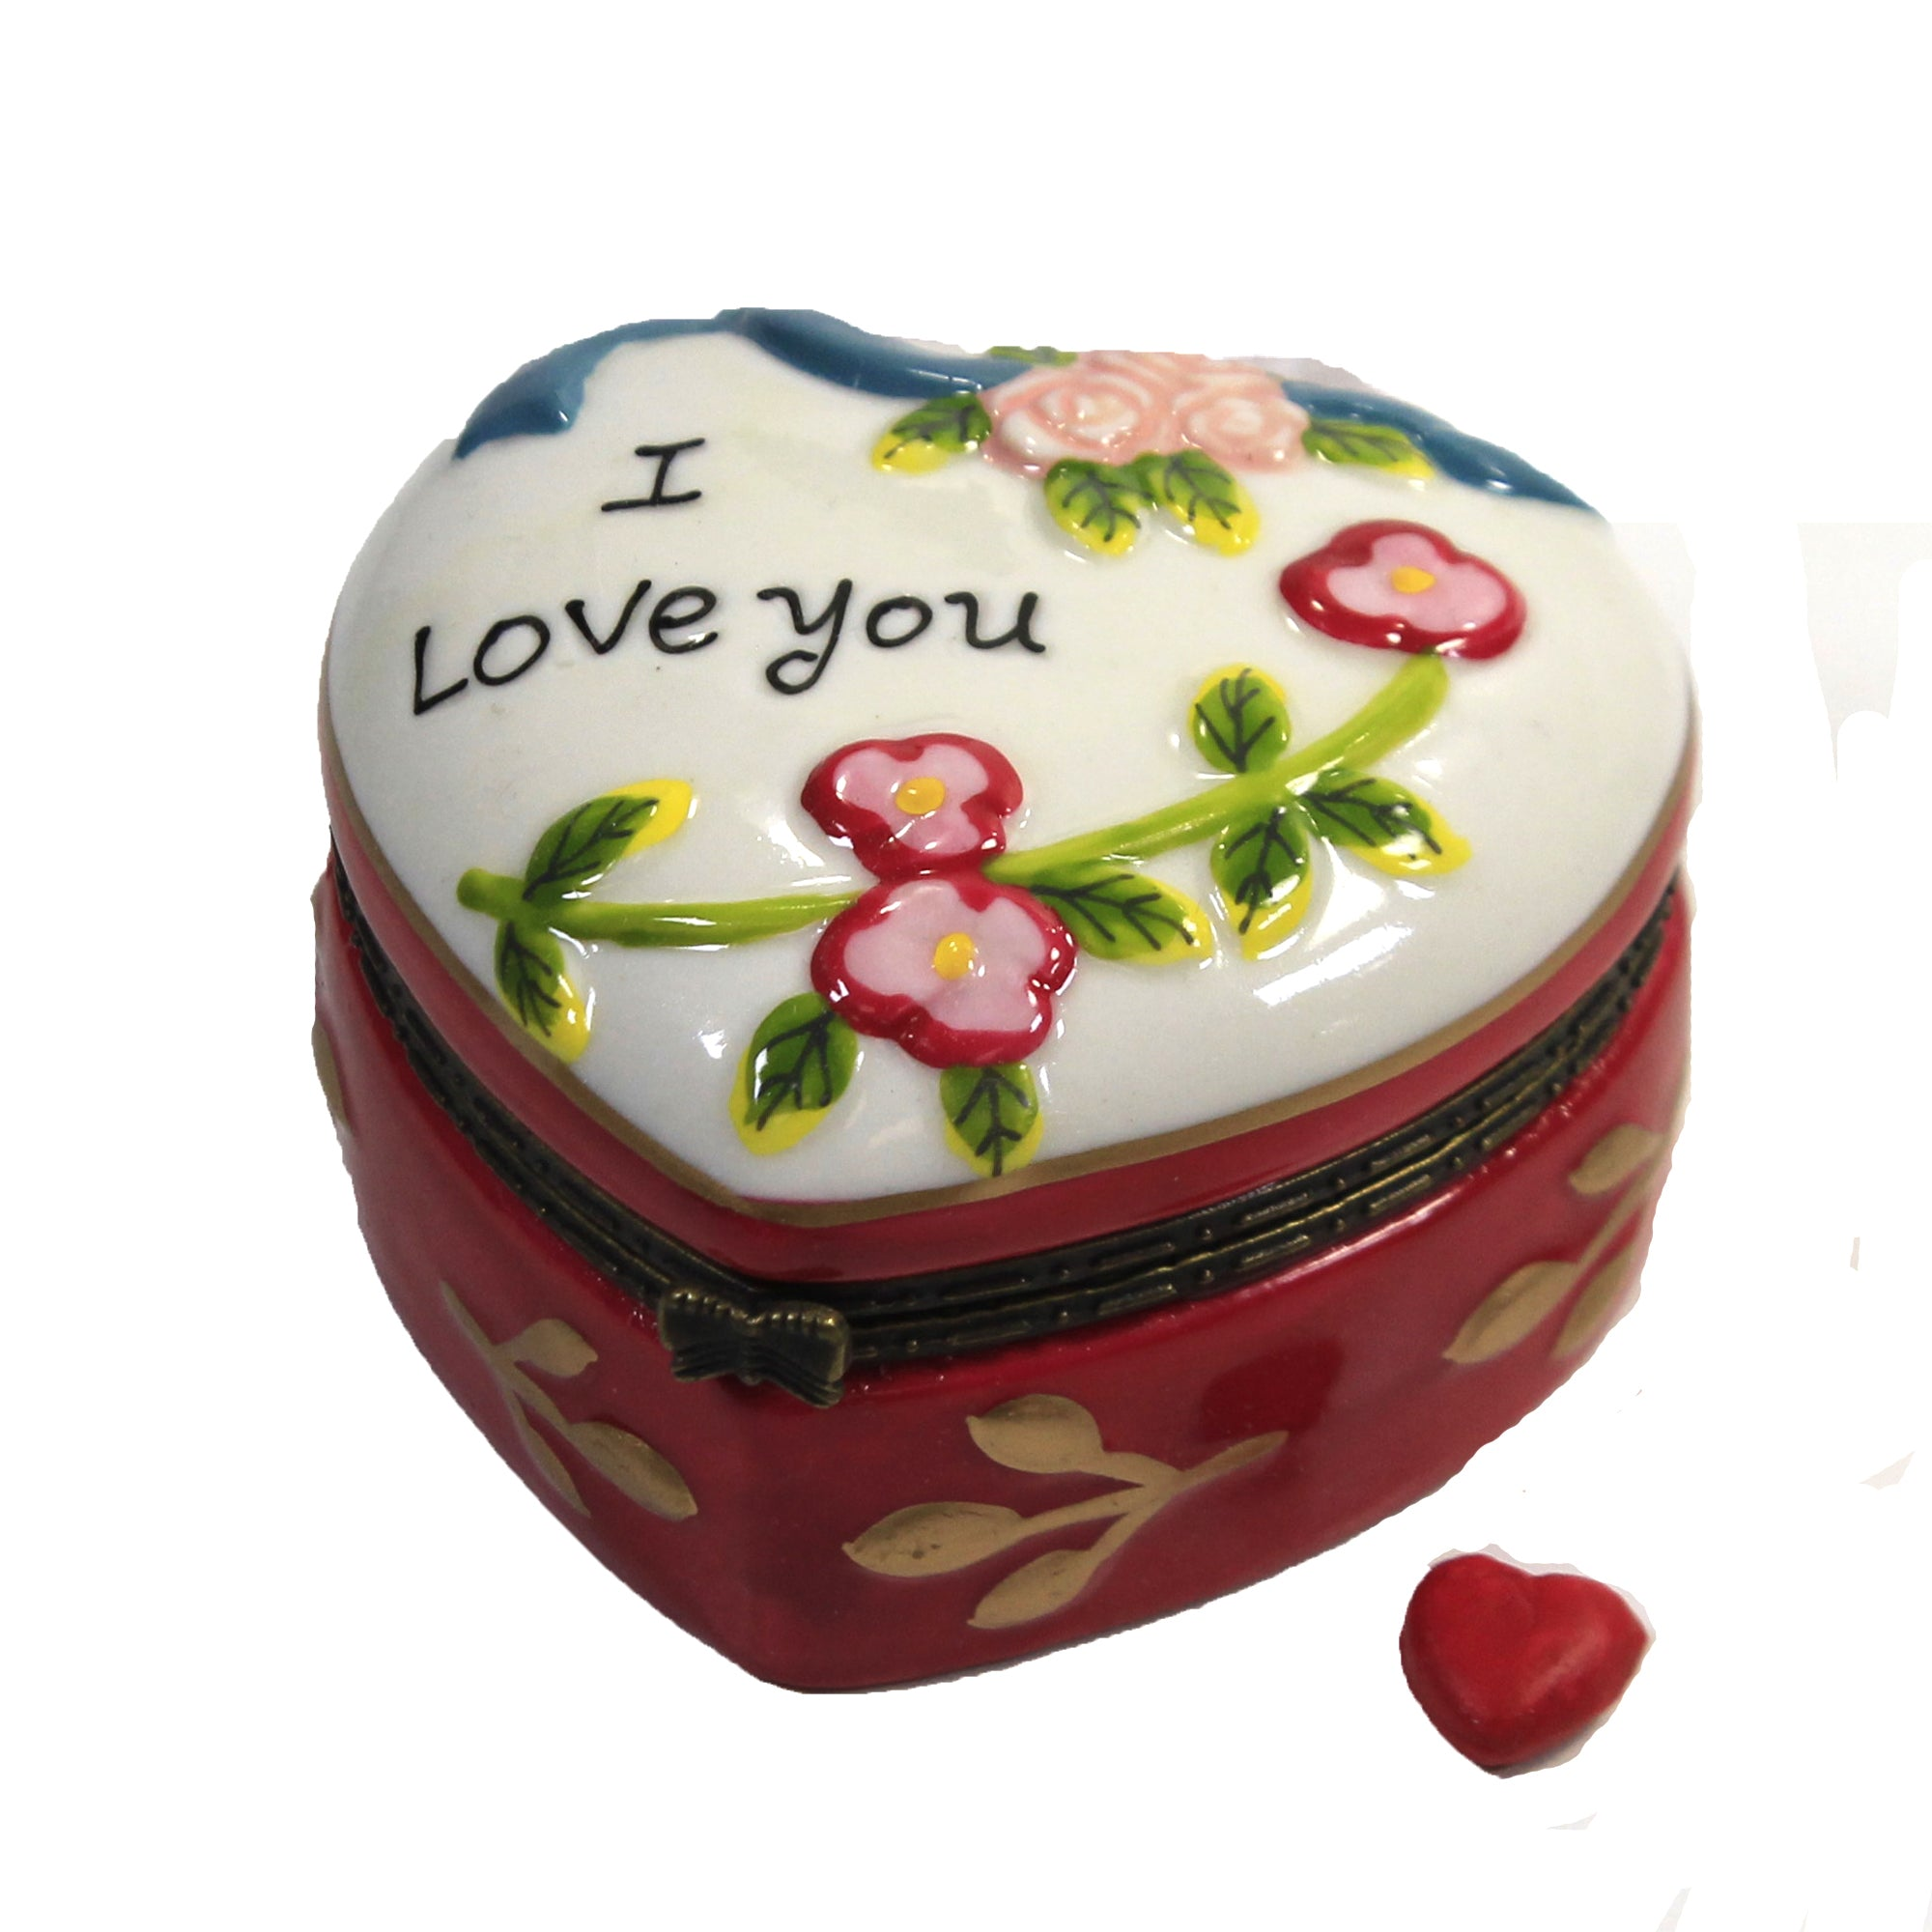 Vintage Festive Heart Decorated Covered Storage Container Valentine Decoration Holiday Gift Hinged Trinket Box